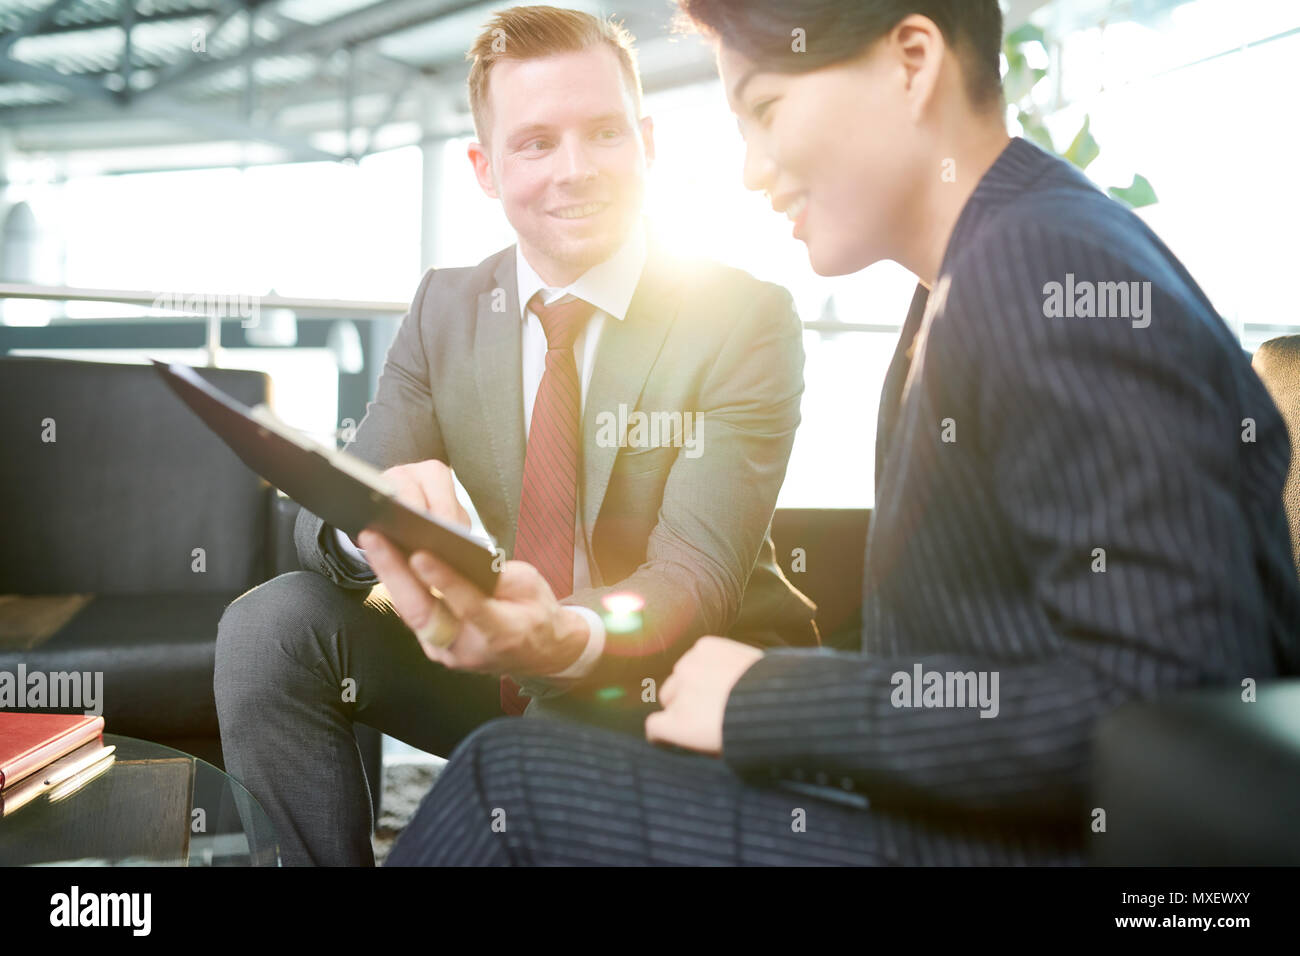 Sharing Creative Ideas with Colleague - Stock Image